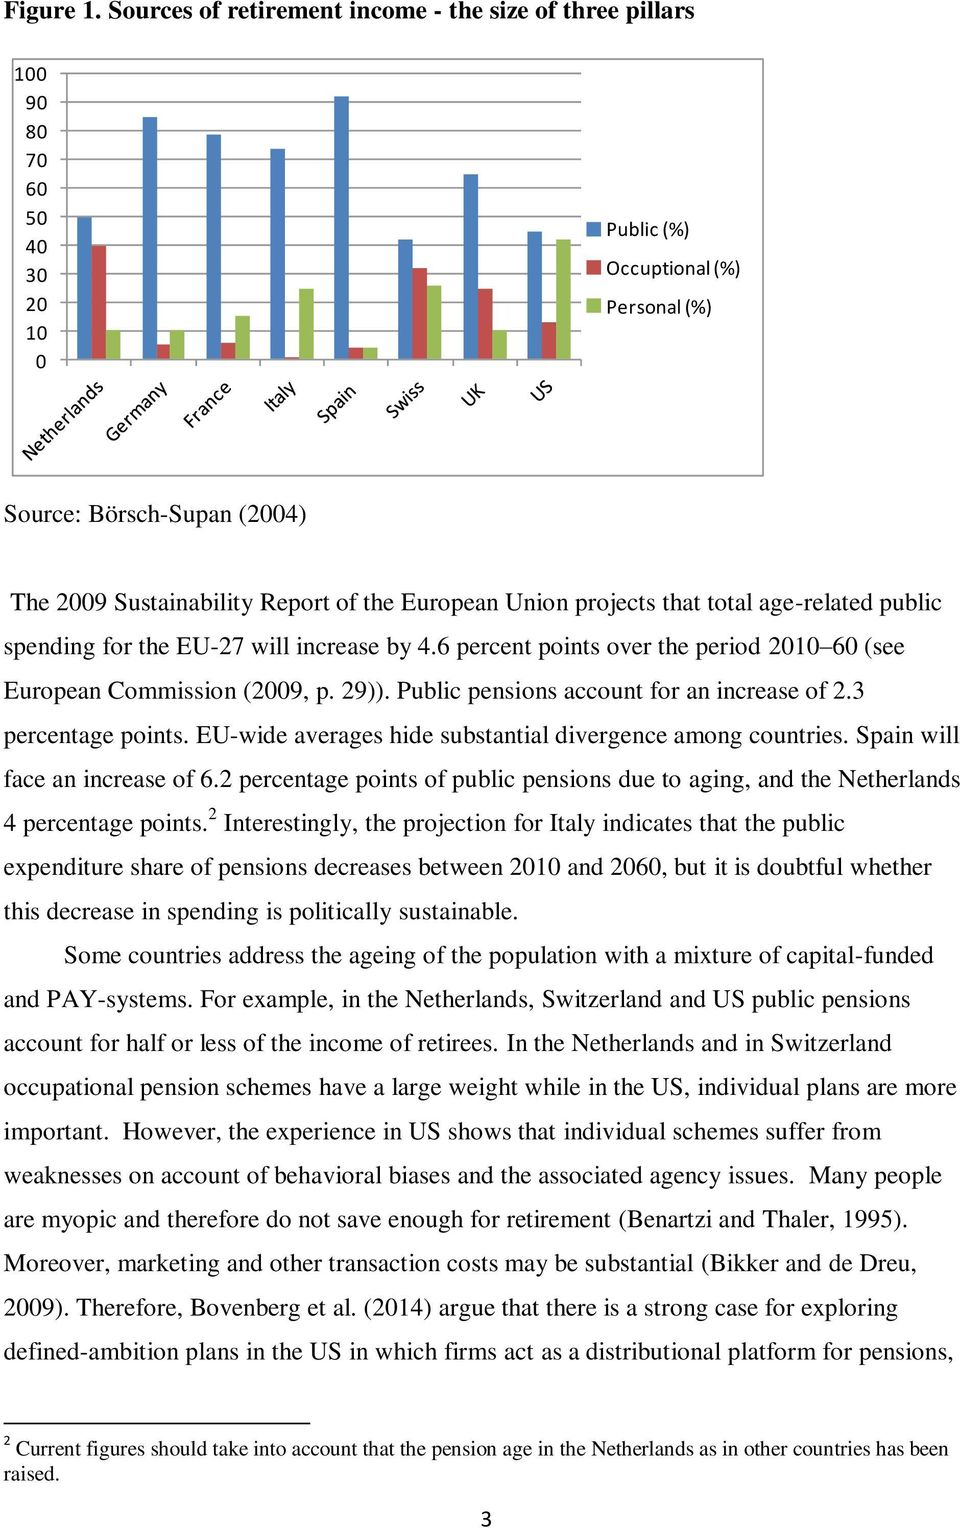 European Union projects that total age-related public spending for the EU-27 will increase by 4.6 percent points over the period 2010 60 (see European Commission (2009, p. 29)).